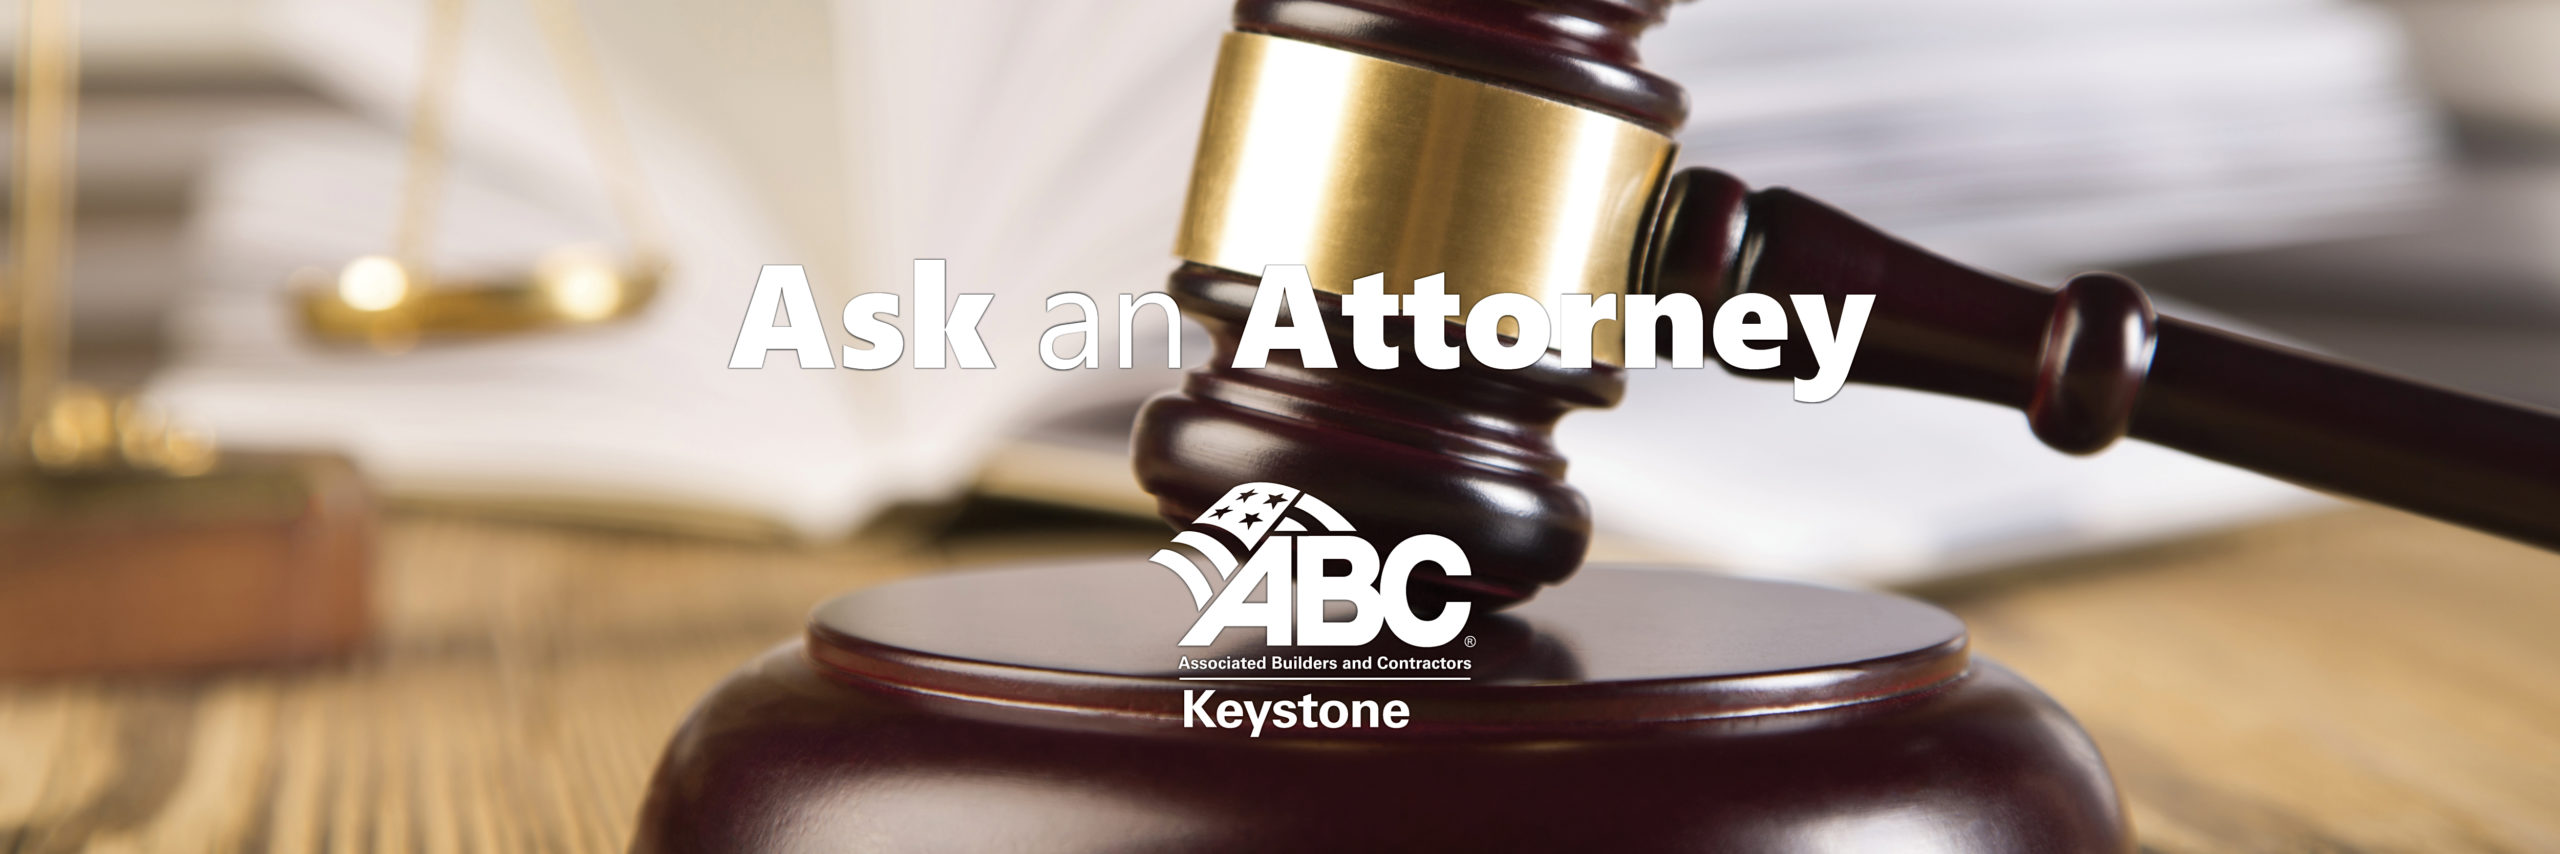 Ask an Attorney - ABC Keystone Blog